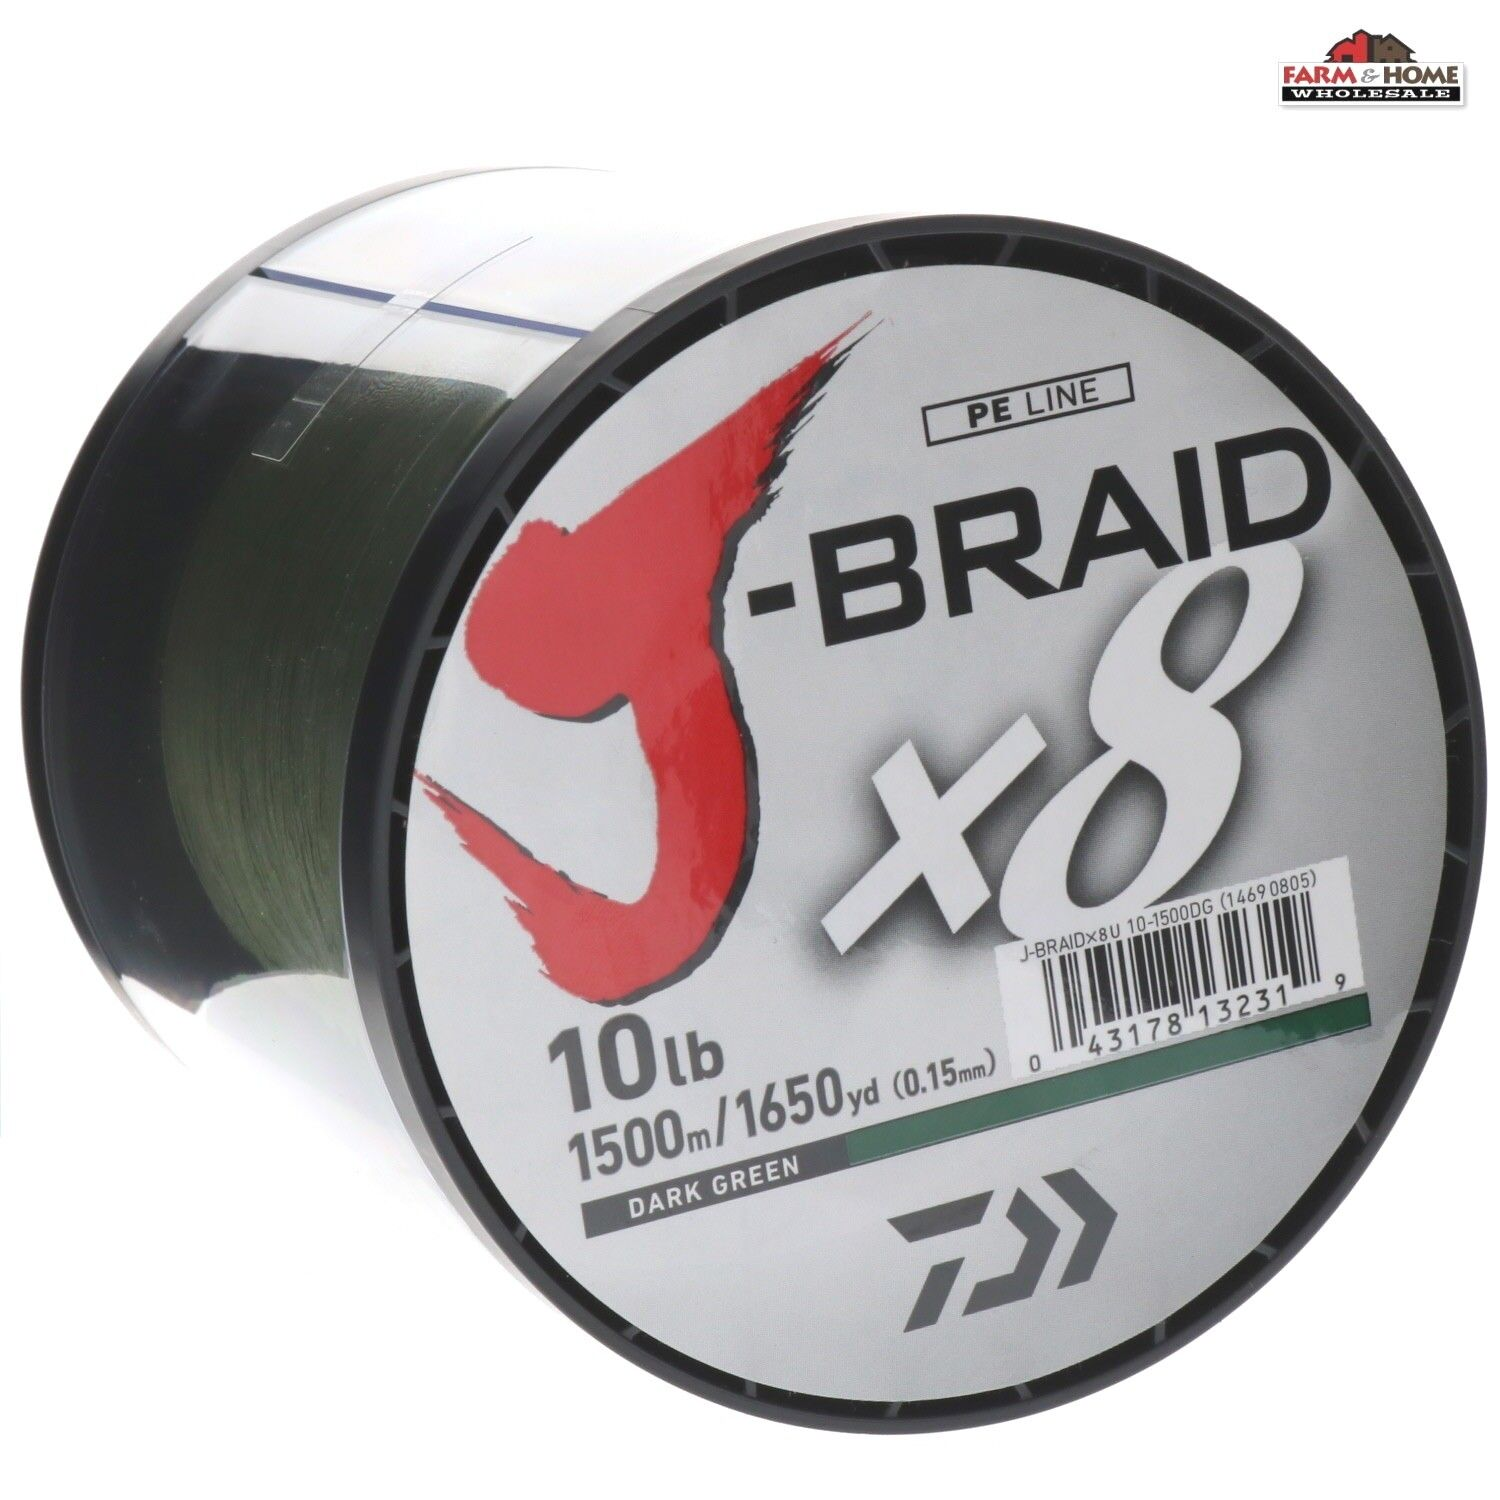 Daiwa JBraid 10lb Braided Line 1650yd Dark verde  New